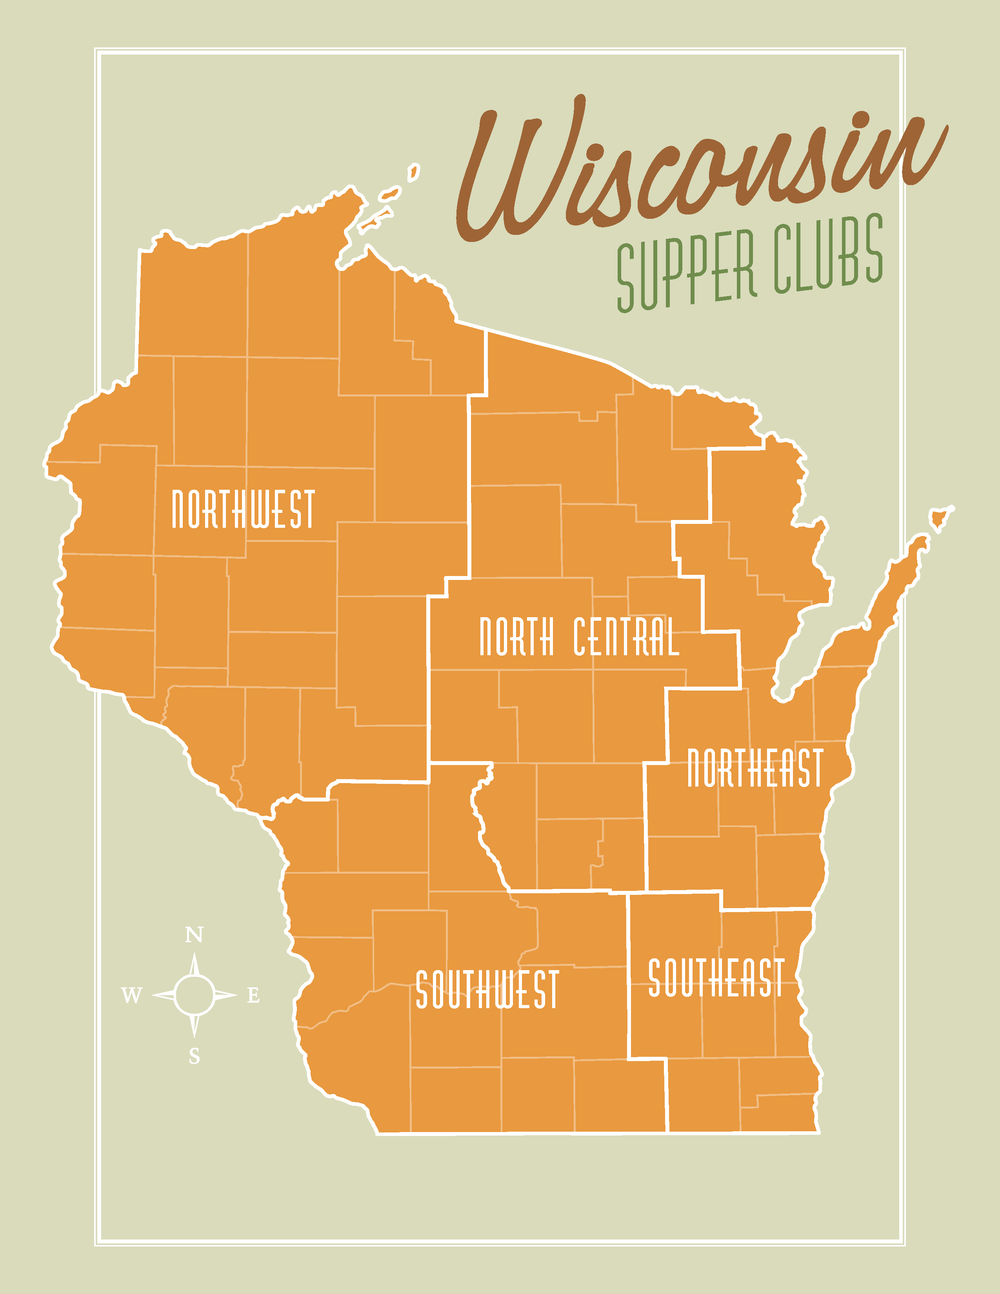 Wisconsin Supper Clubs_Page_05.png